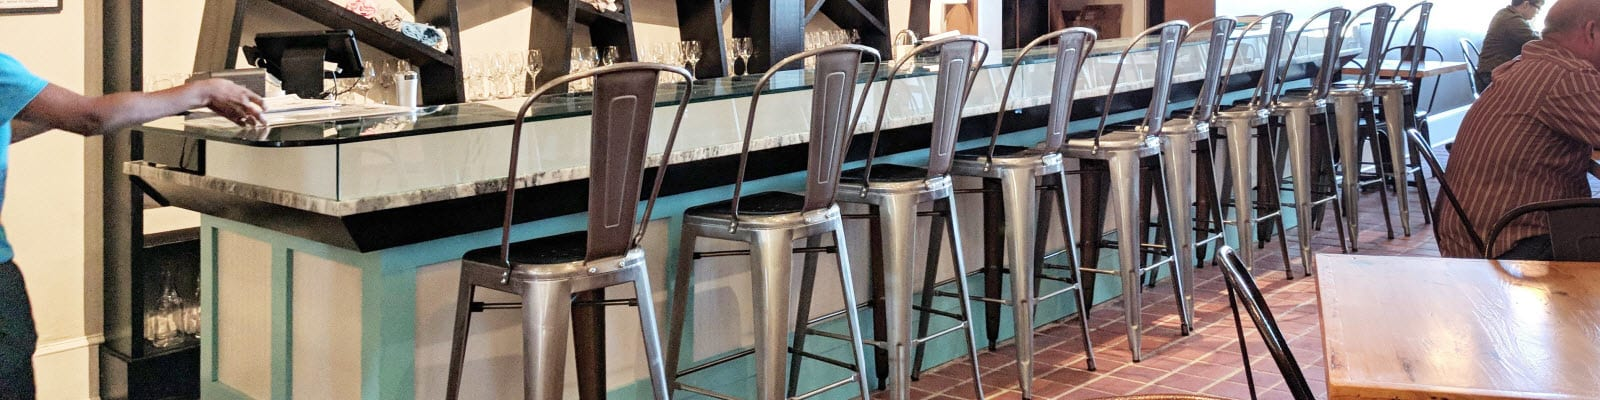 Industrial Tolix style bar stools